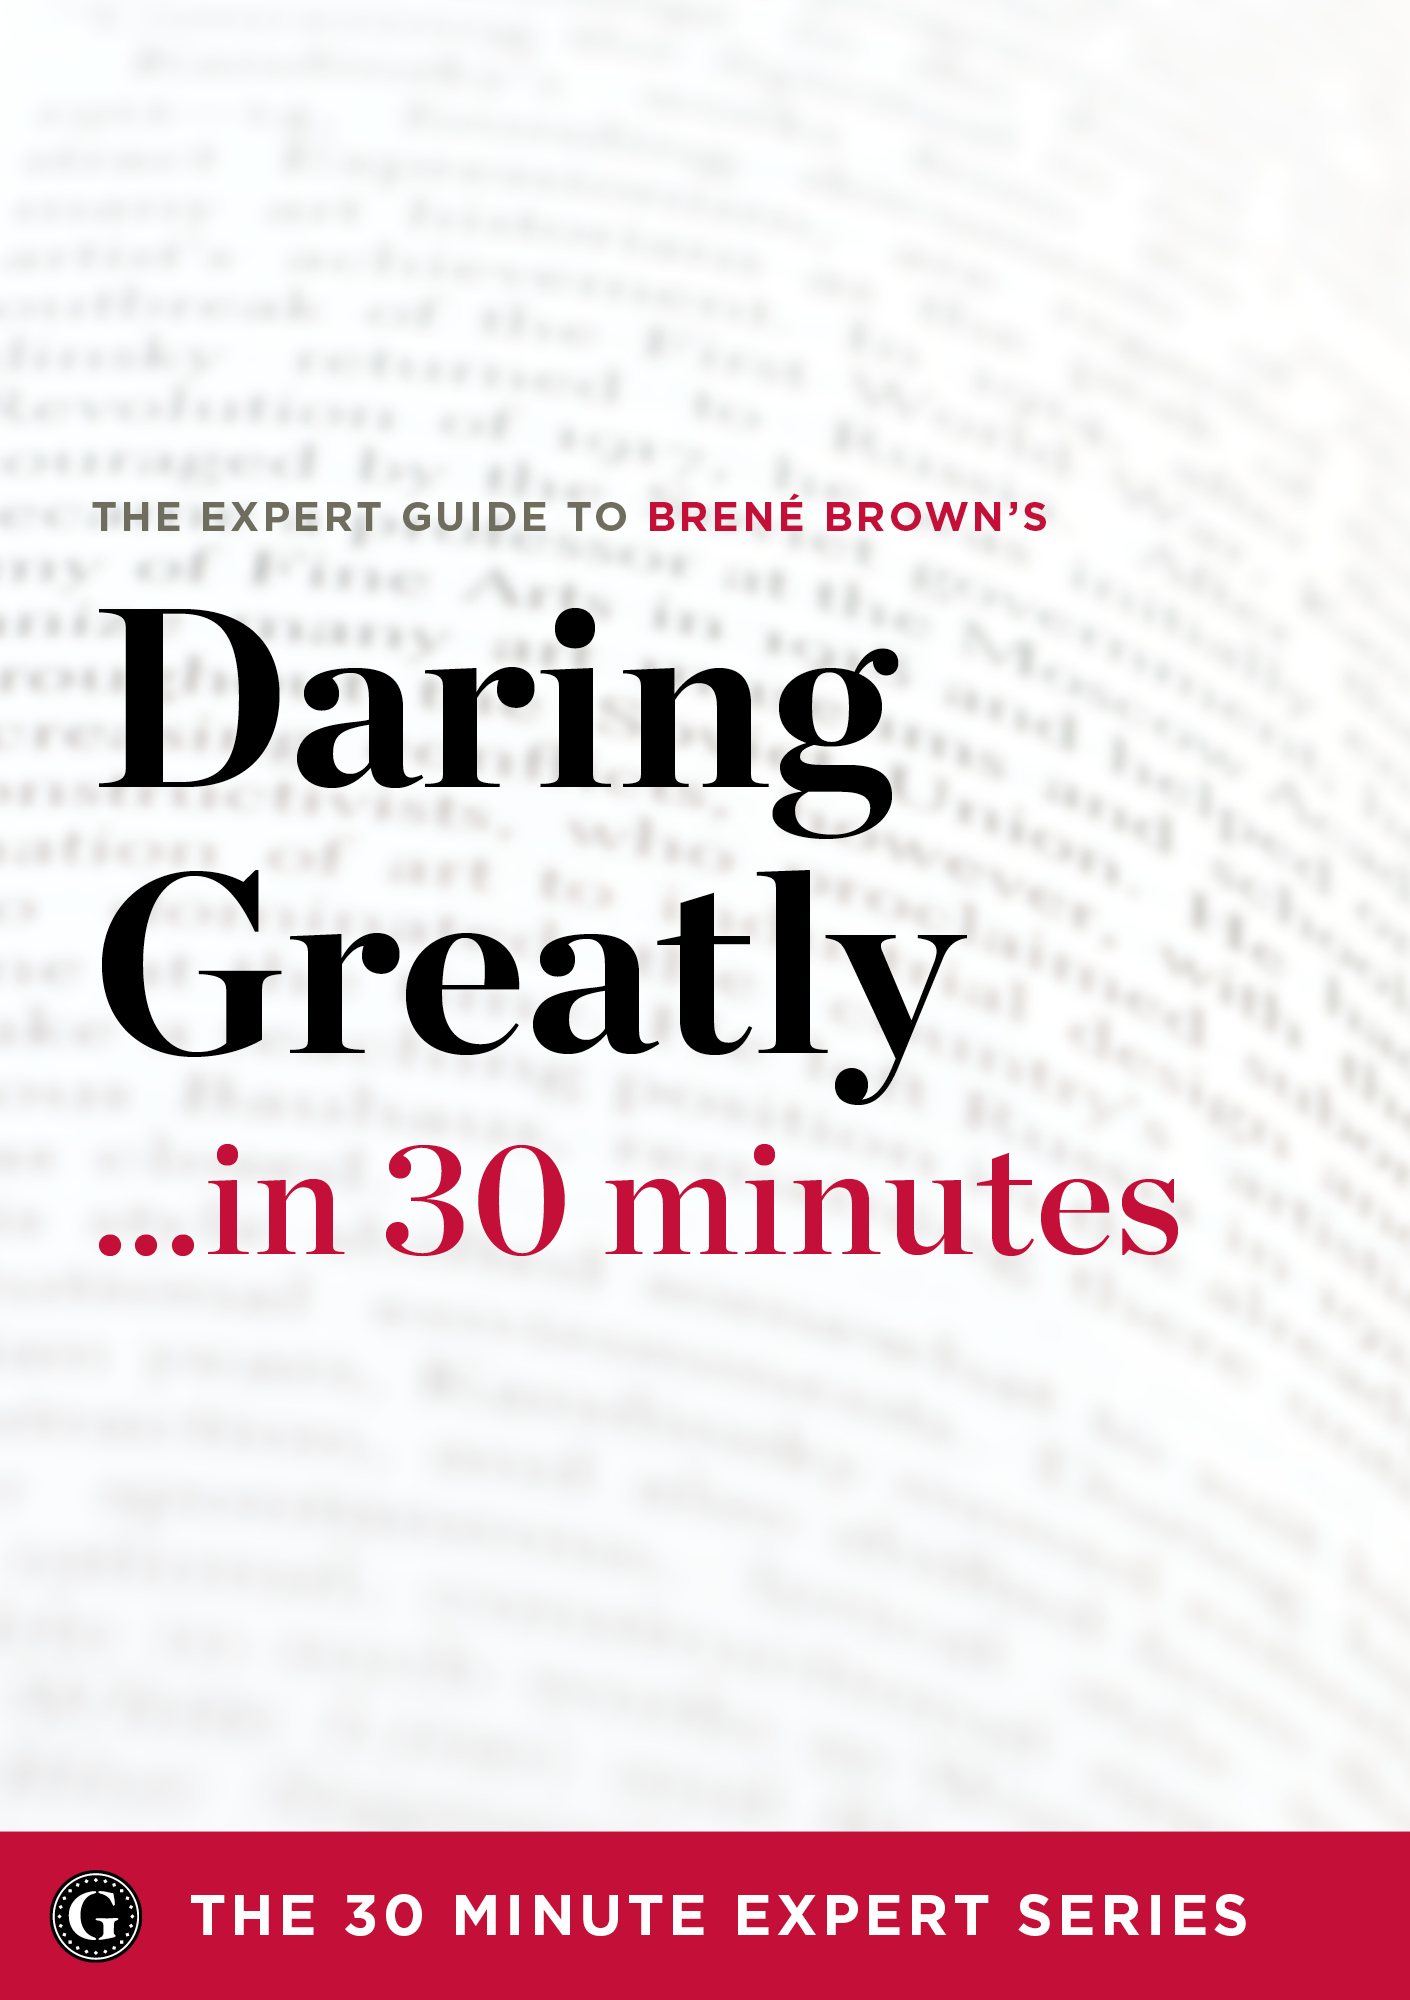 Daring Greatly in 30 Minutes – The Expert Guide to Brene Brown's Critically Acclaimed Book